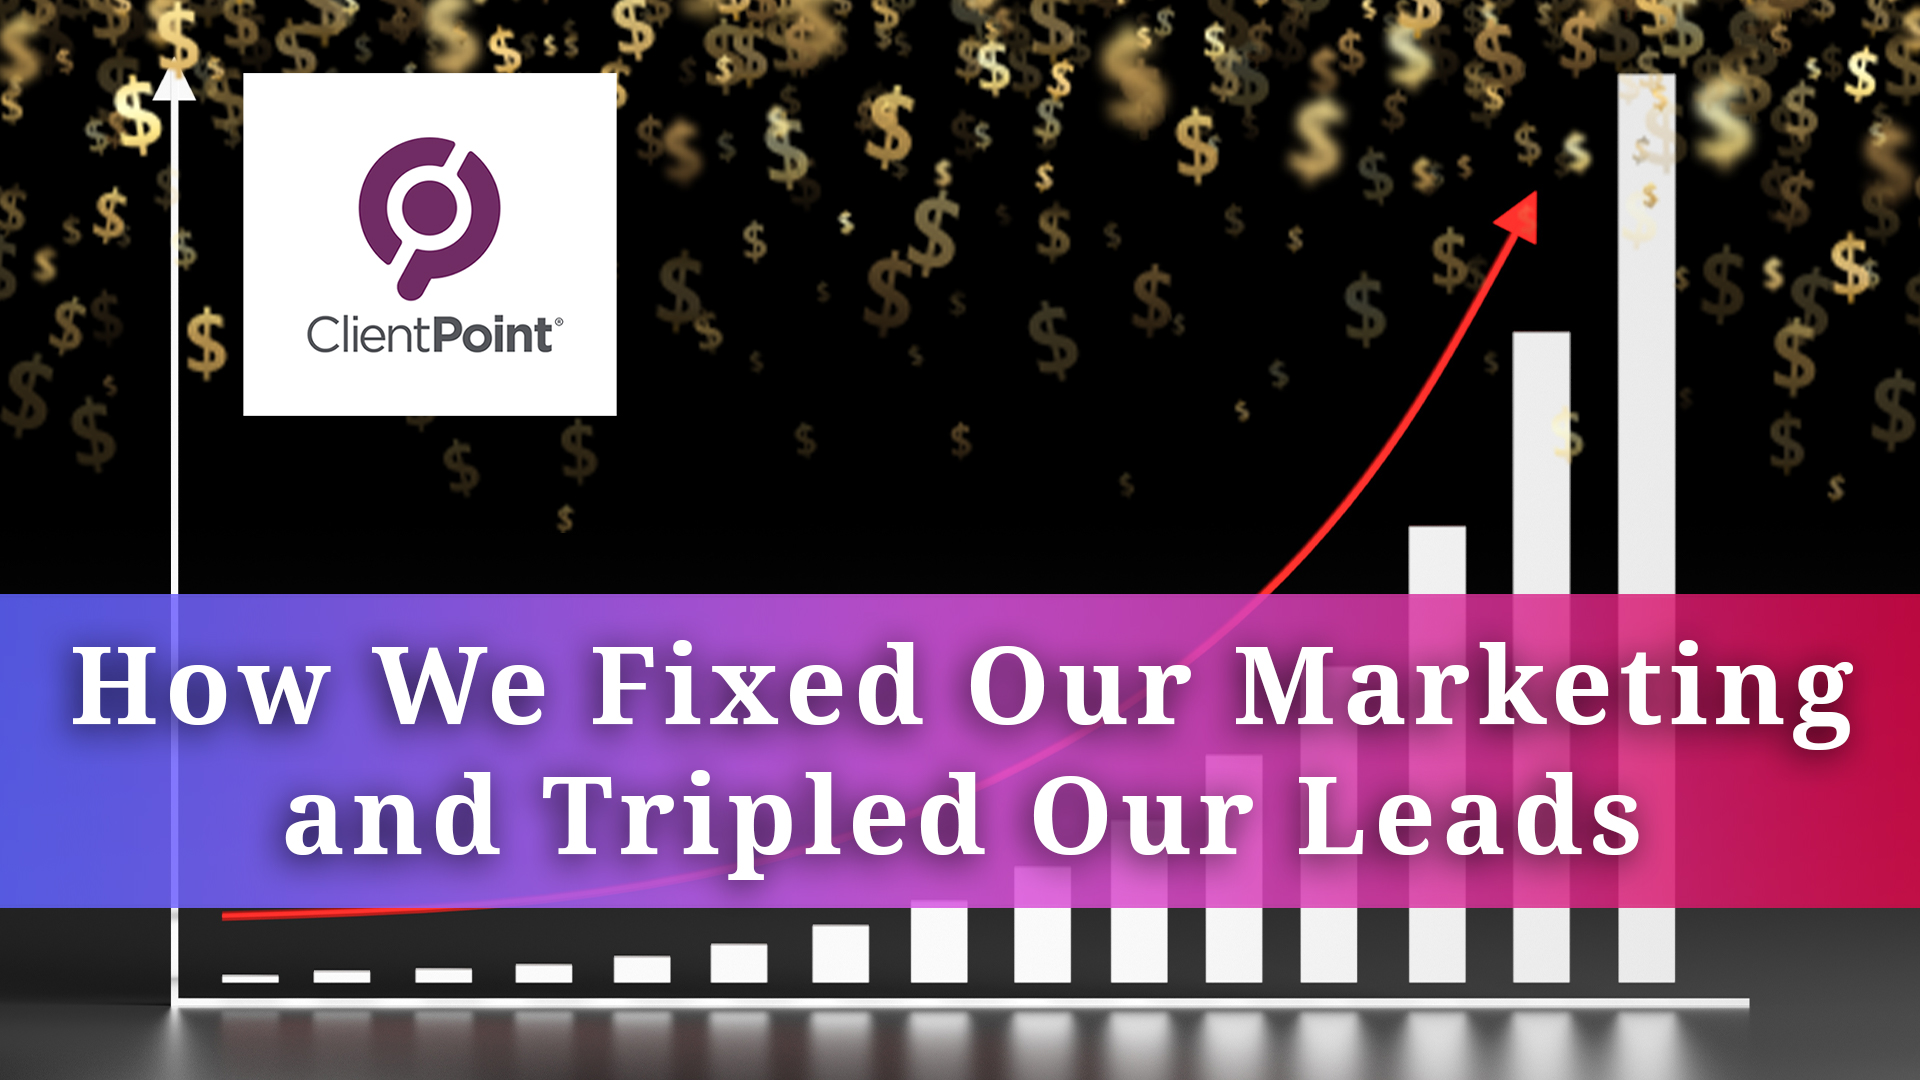 How We Fixed Our Marketing and Tripled Our Leads